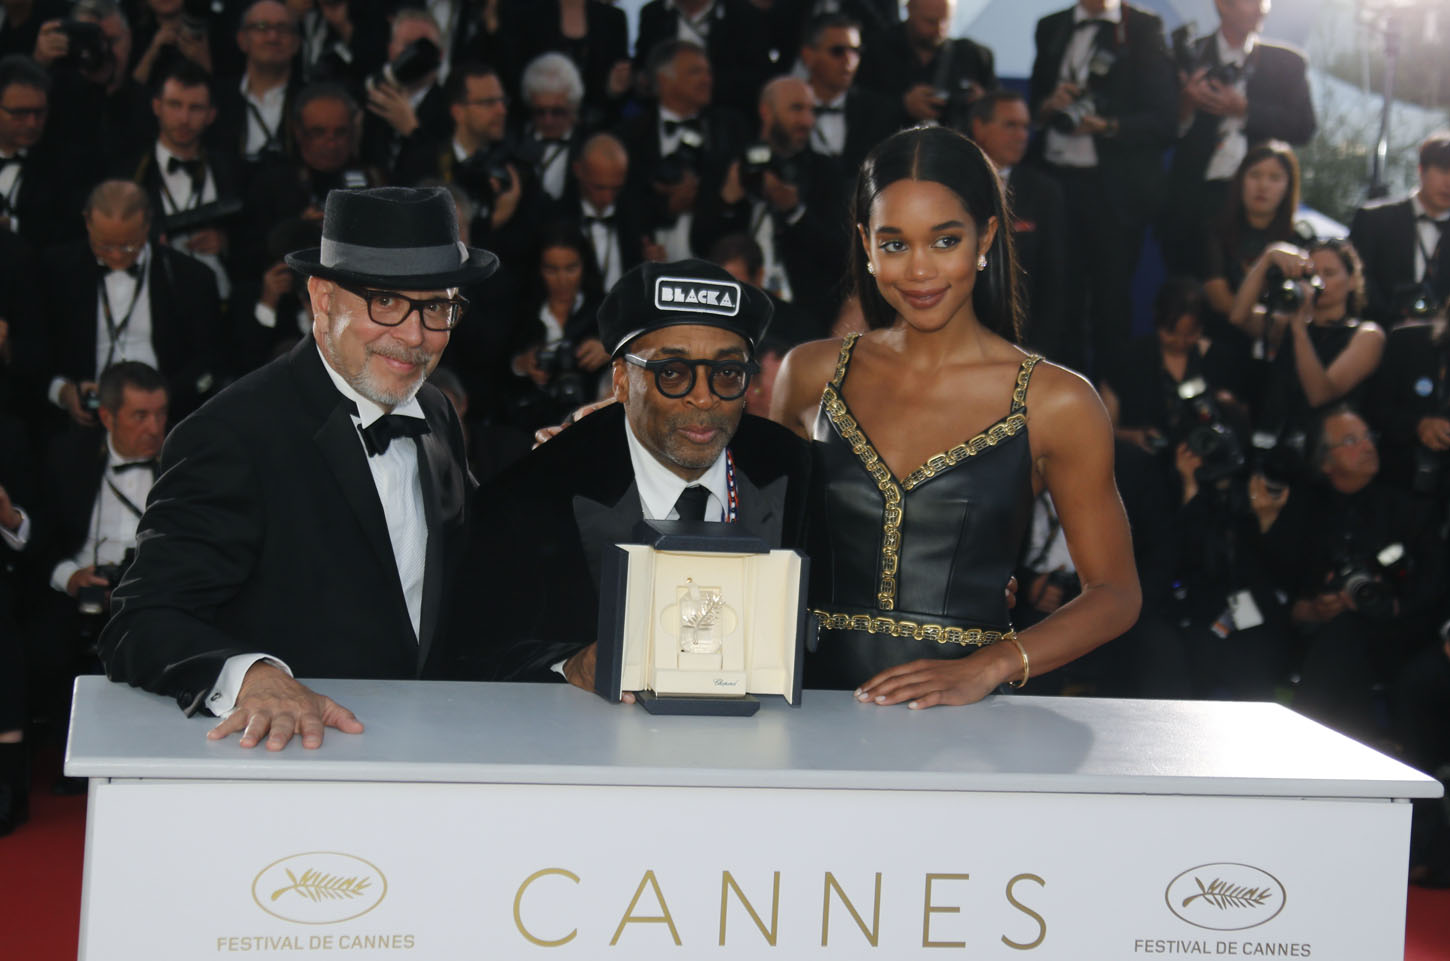 71st Cannes Film Festival - Photocall after Closing ceremony - Cannes, France, May 19, 2018. Director Spike Lee, Grand Prix award winner for his film